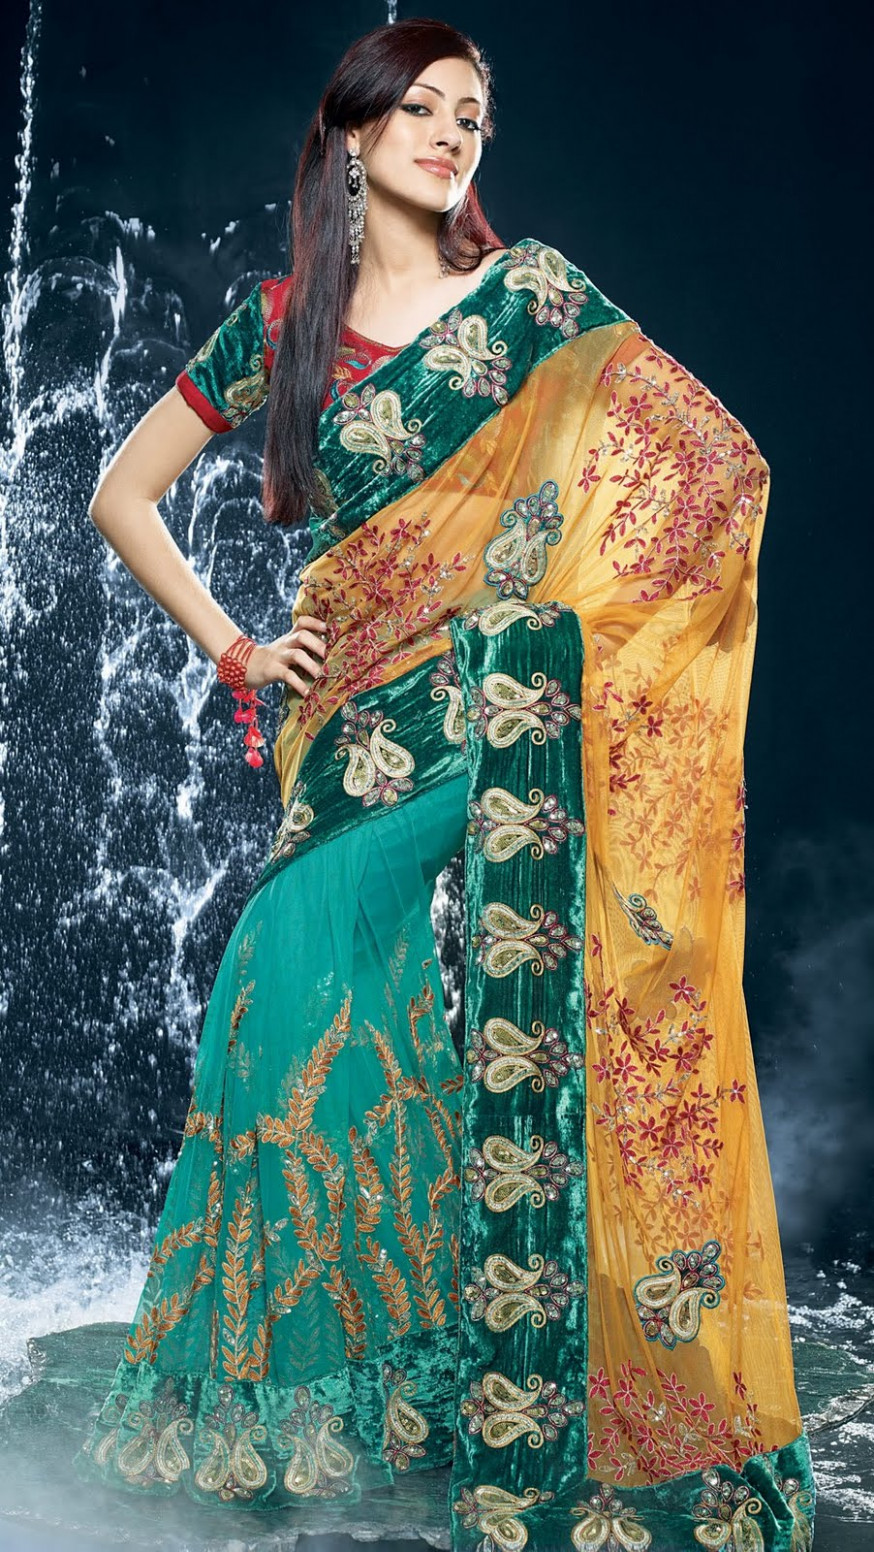 newallthing: NEW FANCY SAREE COLLECTION